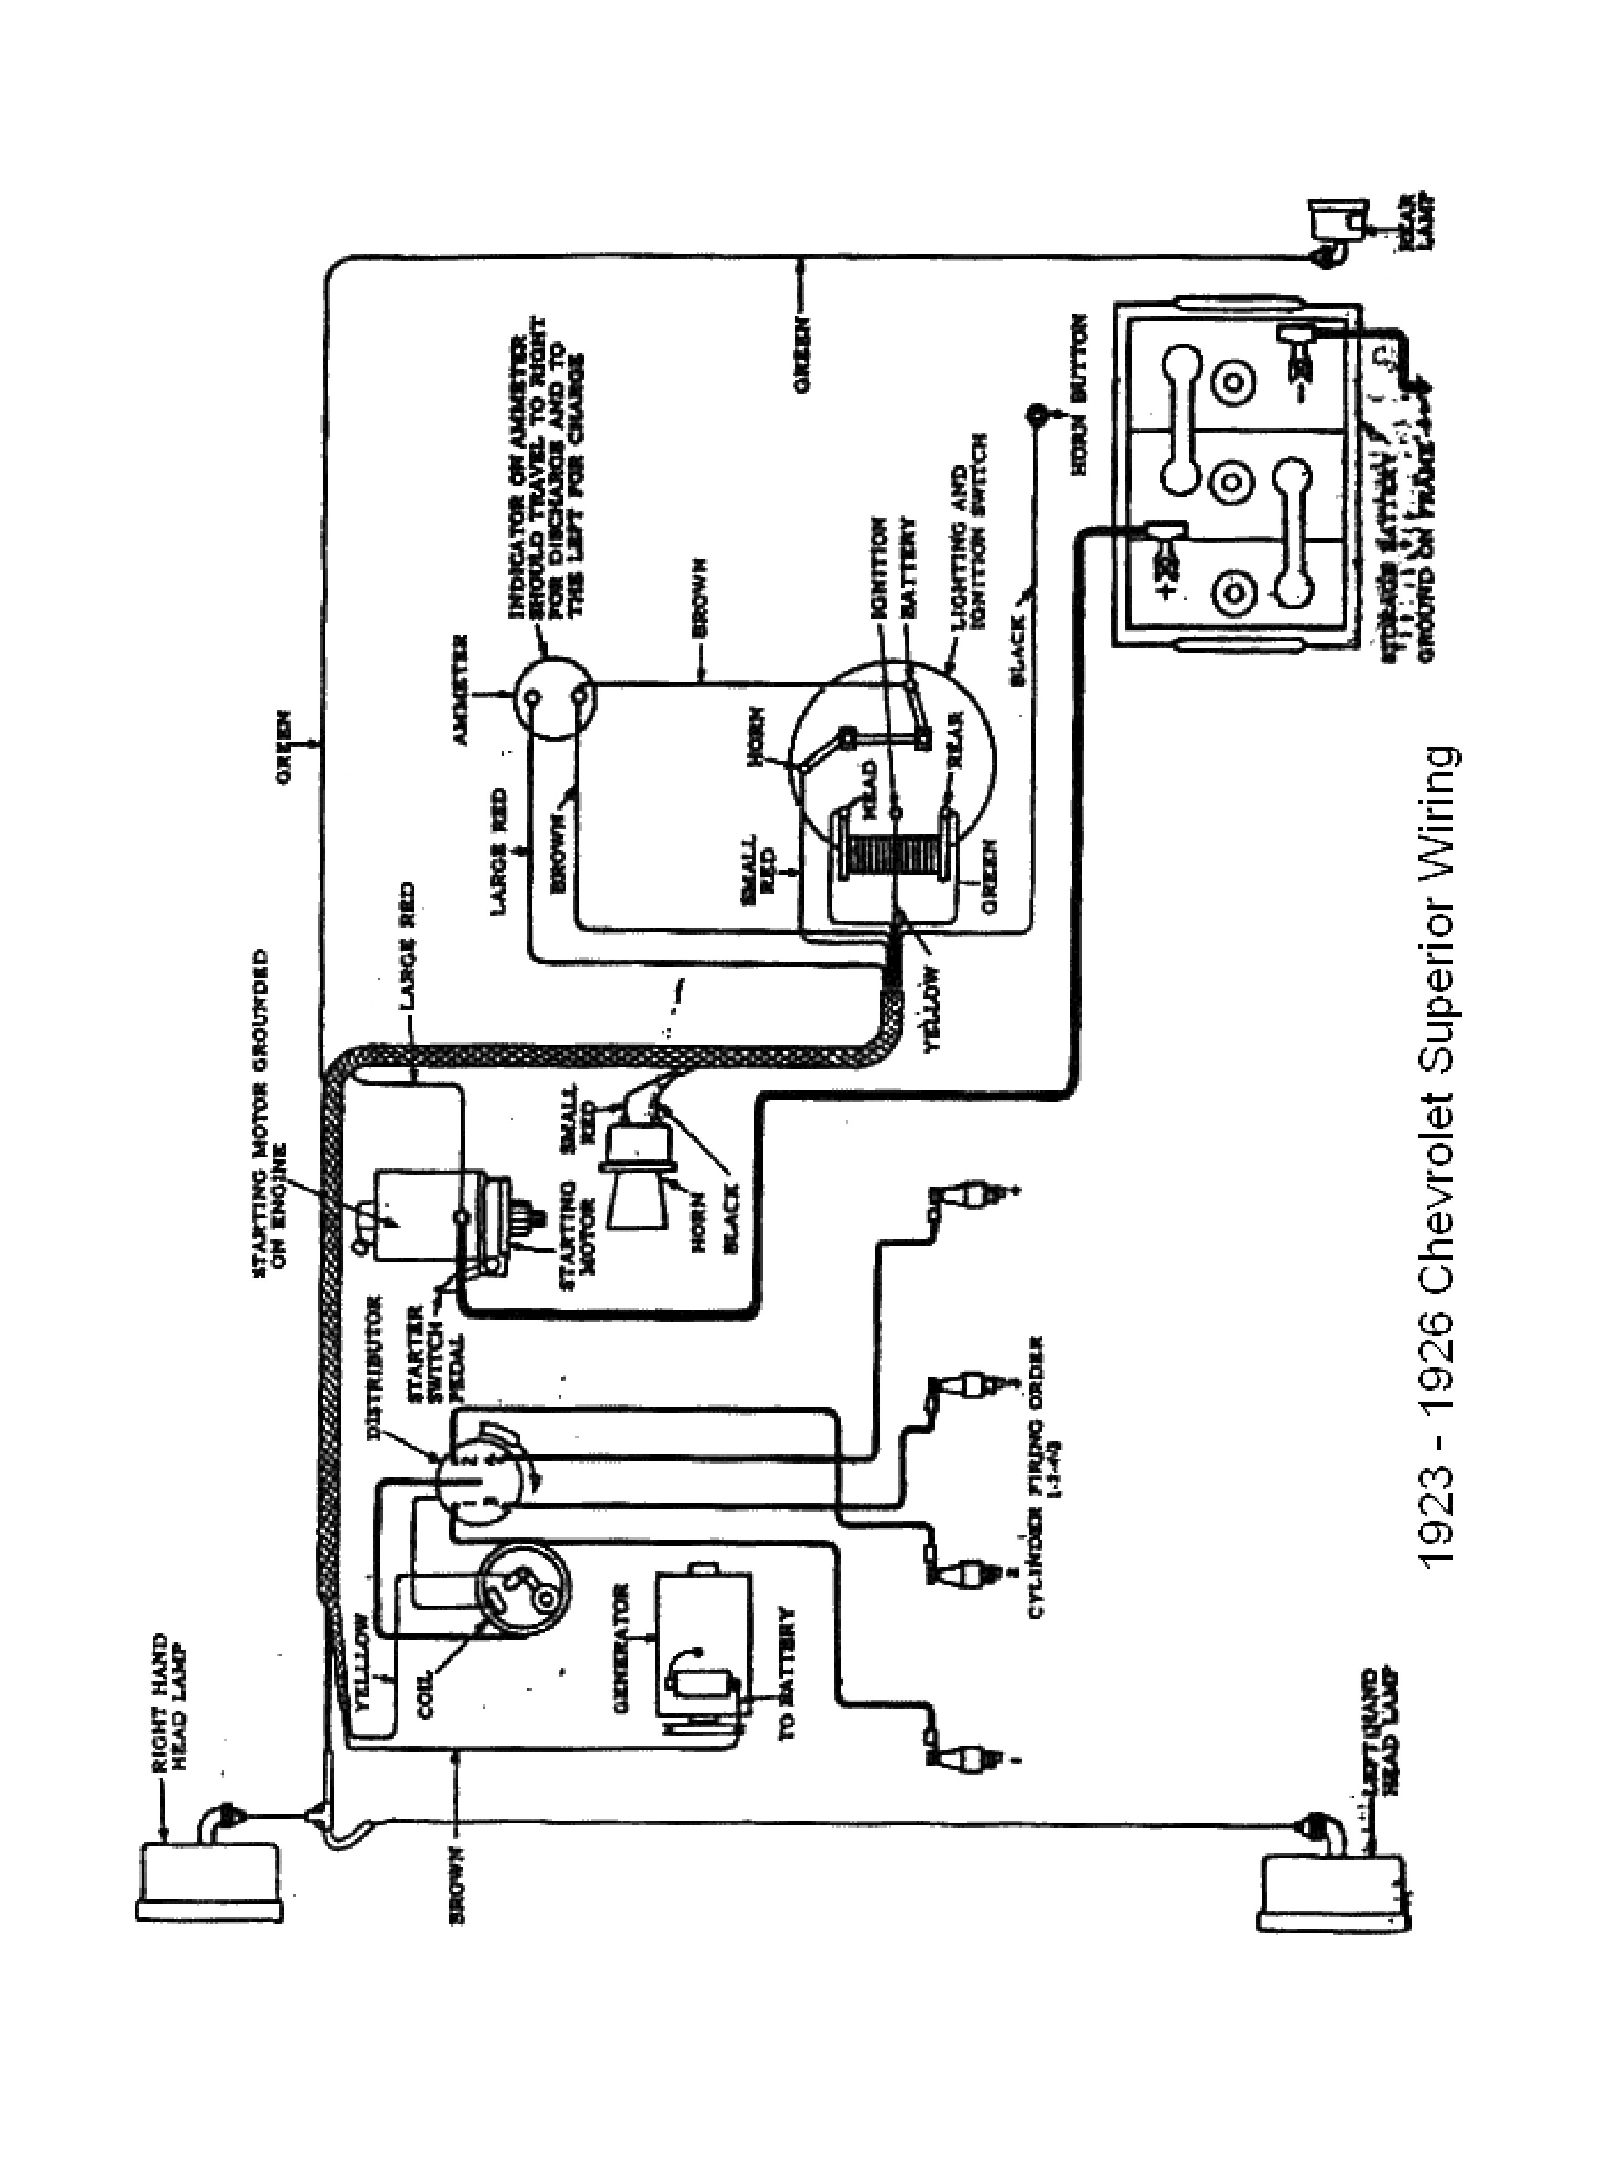 Diagram  Farmall Model A Wiring Diagram Full Version Hd Quality Wiring Diagram